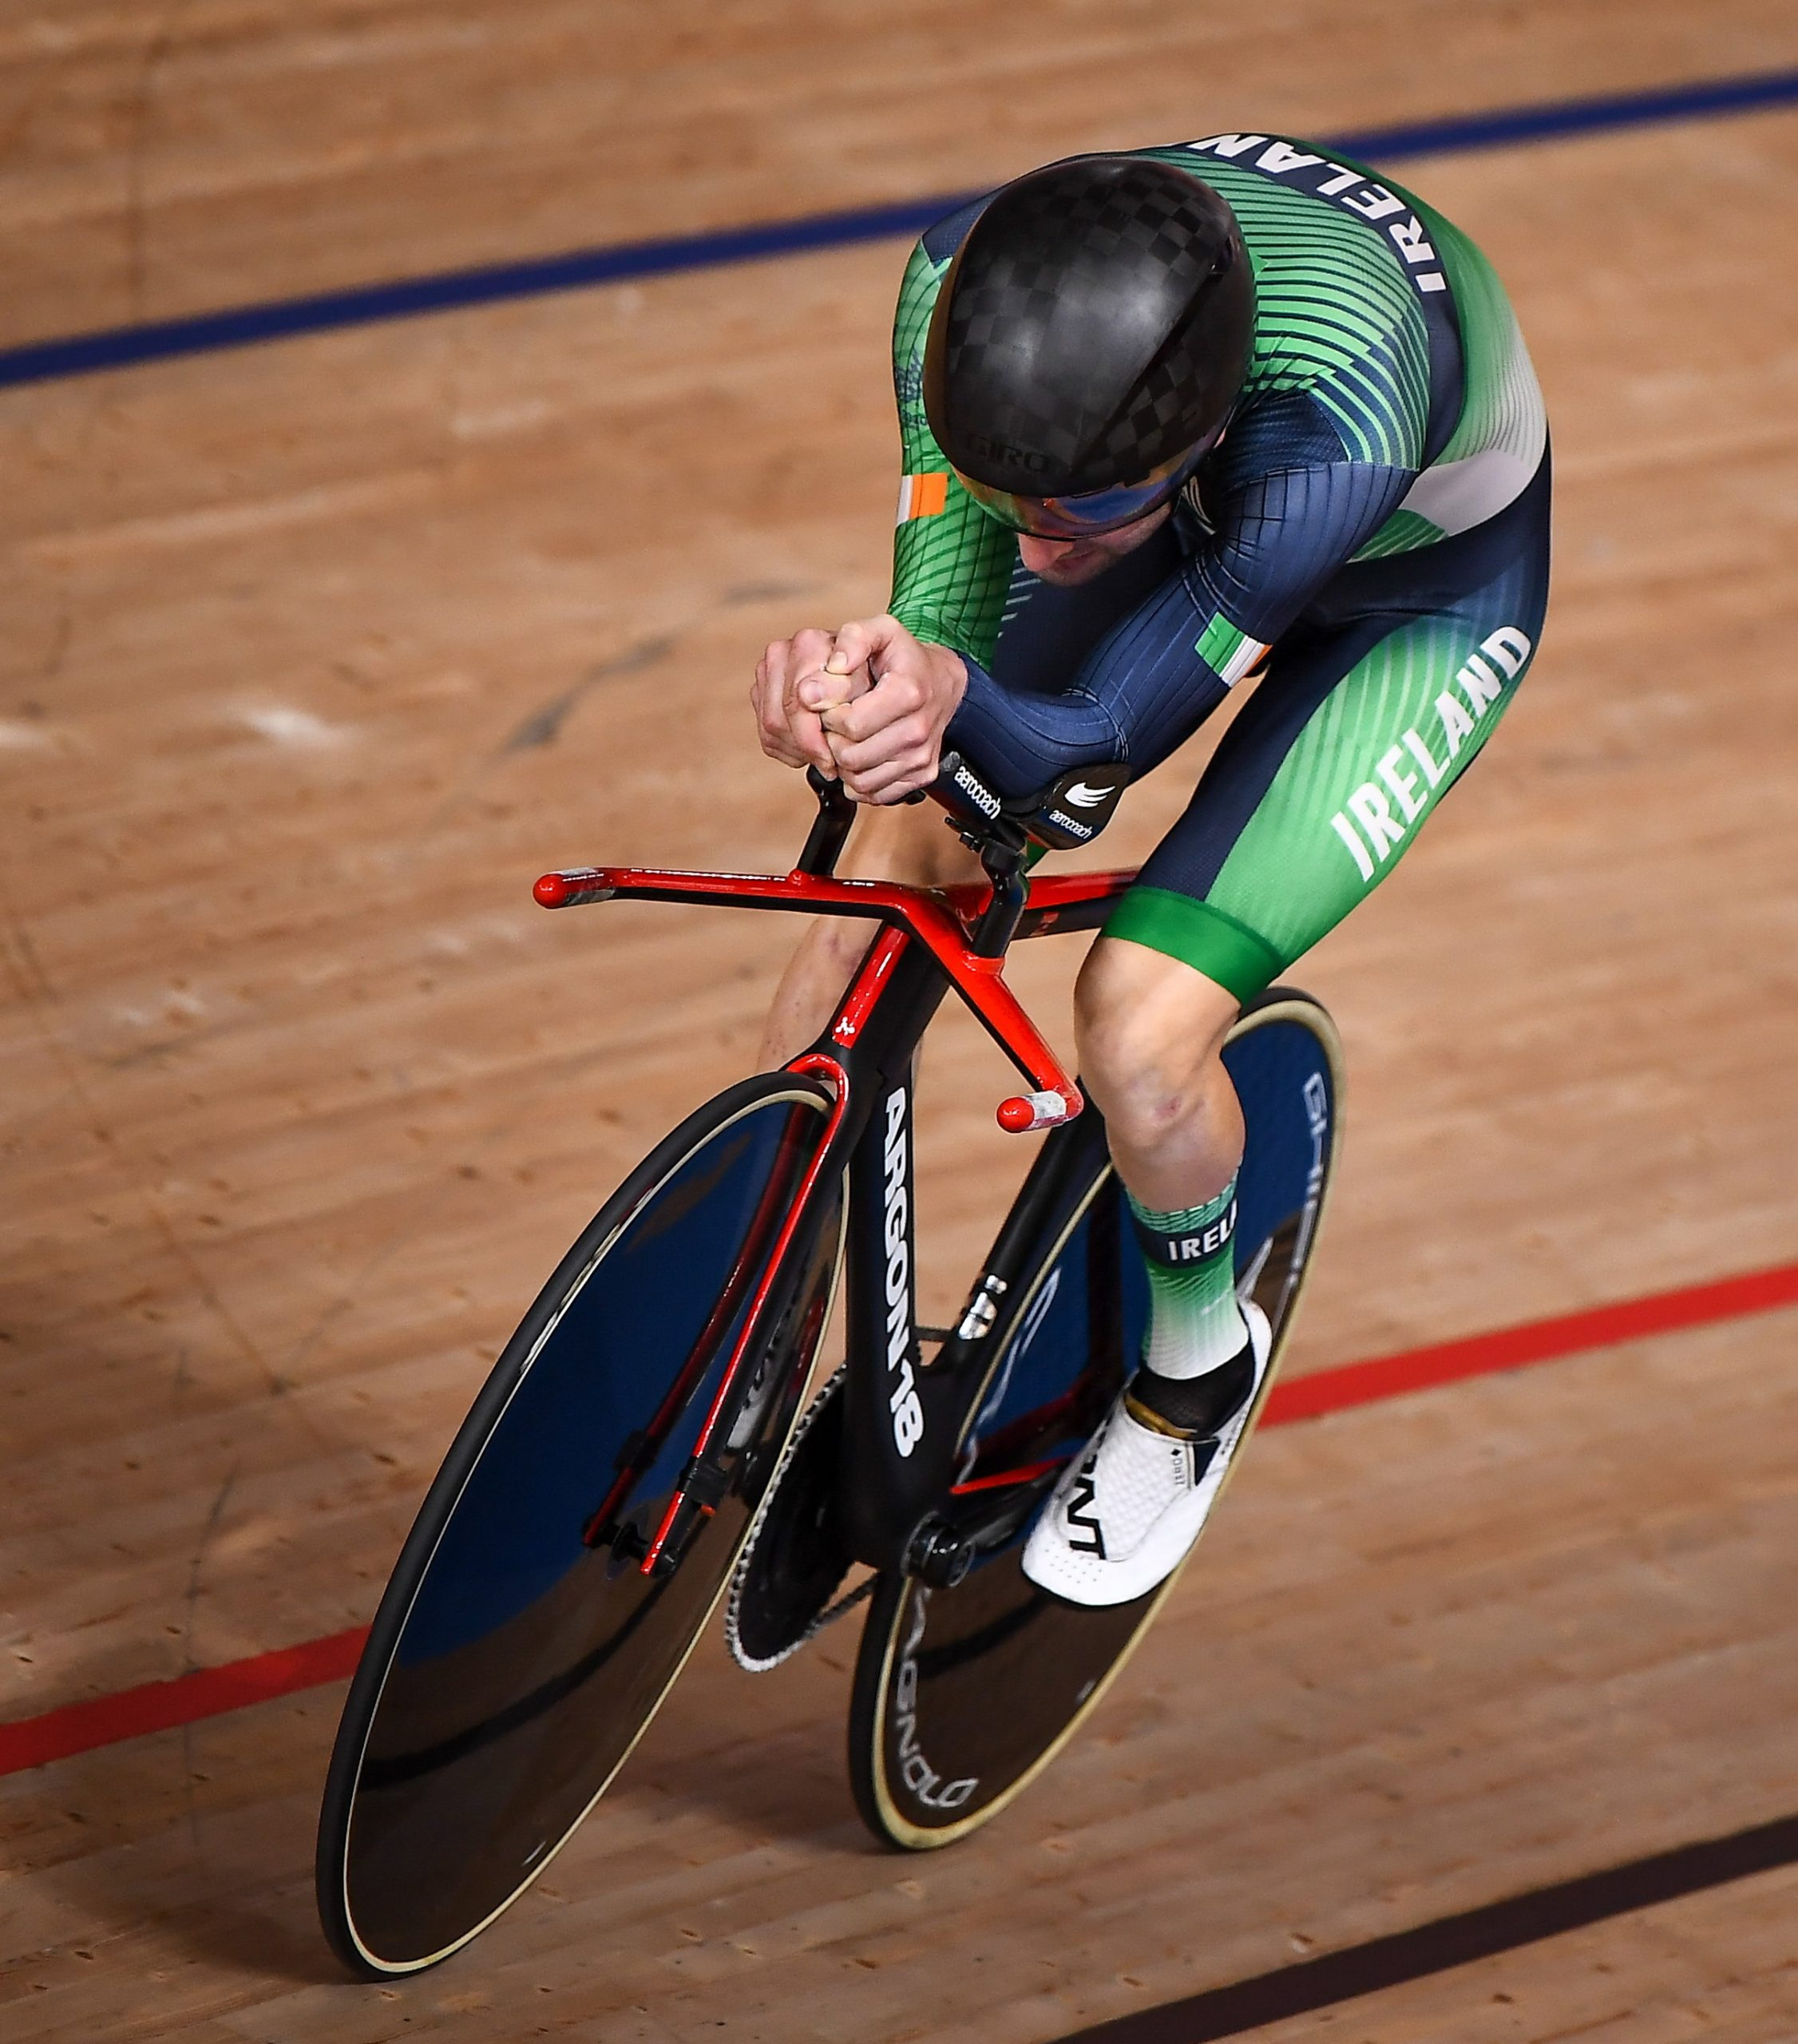 26 August 2021; Ronan Grimes of Ireland competes in the Men's C4-5 1000 metre time trial at the Izu Velodrome on day two during the Tokyo 2020 Paralympic Games in Tokyo, Japan. Photo by David Fitzgerald/Sportsfile *** NO REPRODUCTION FEE ***